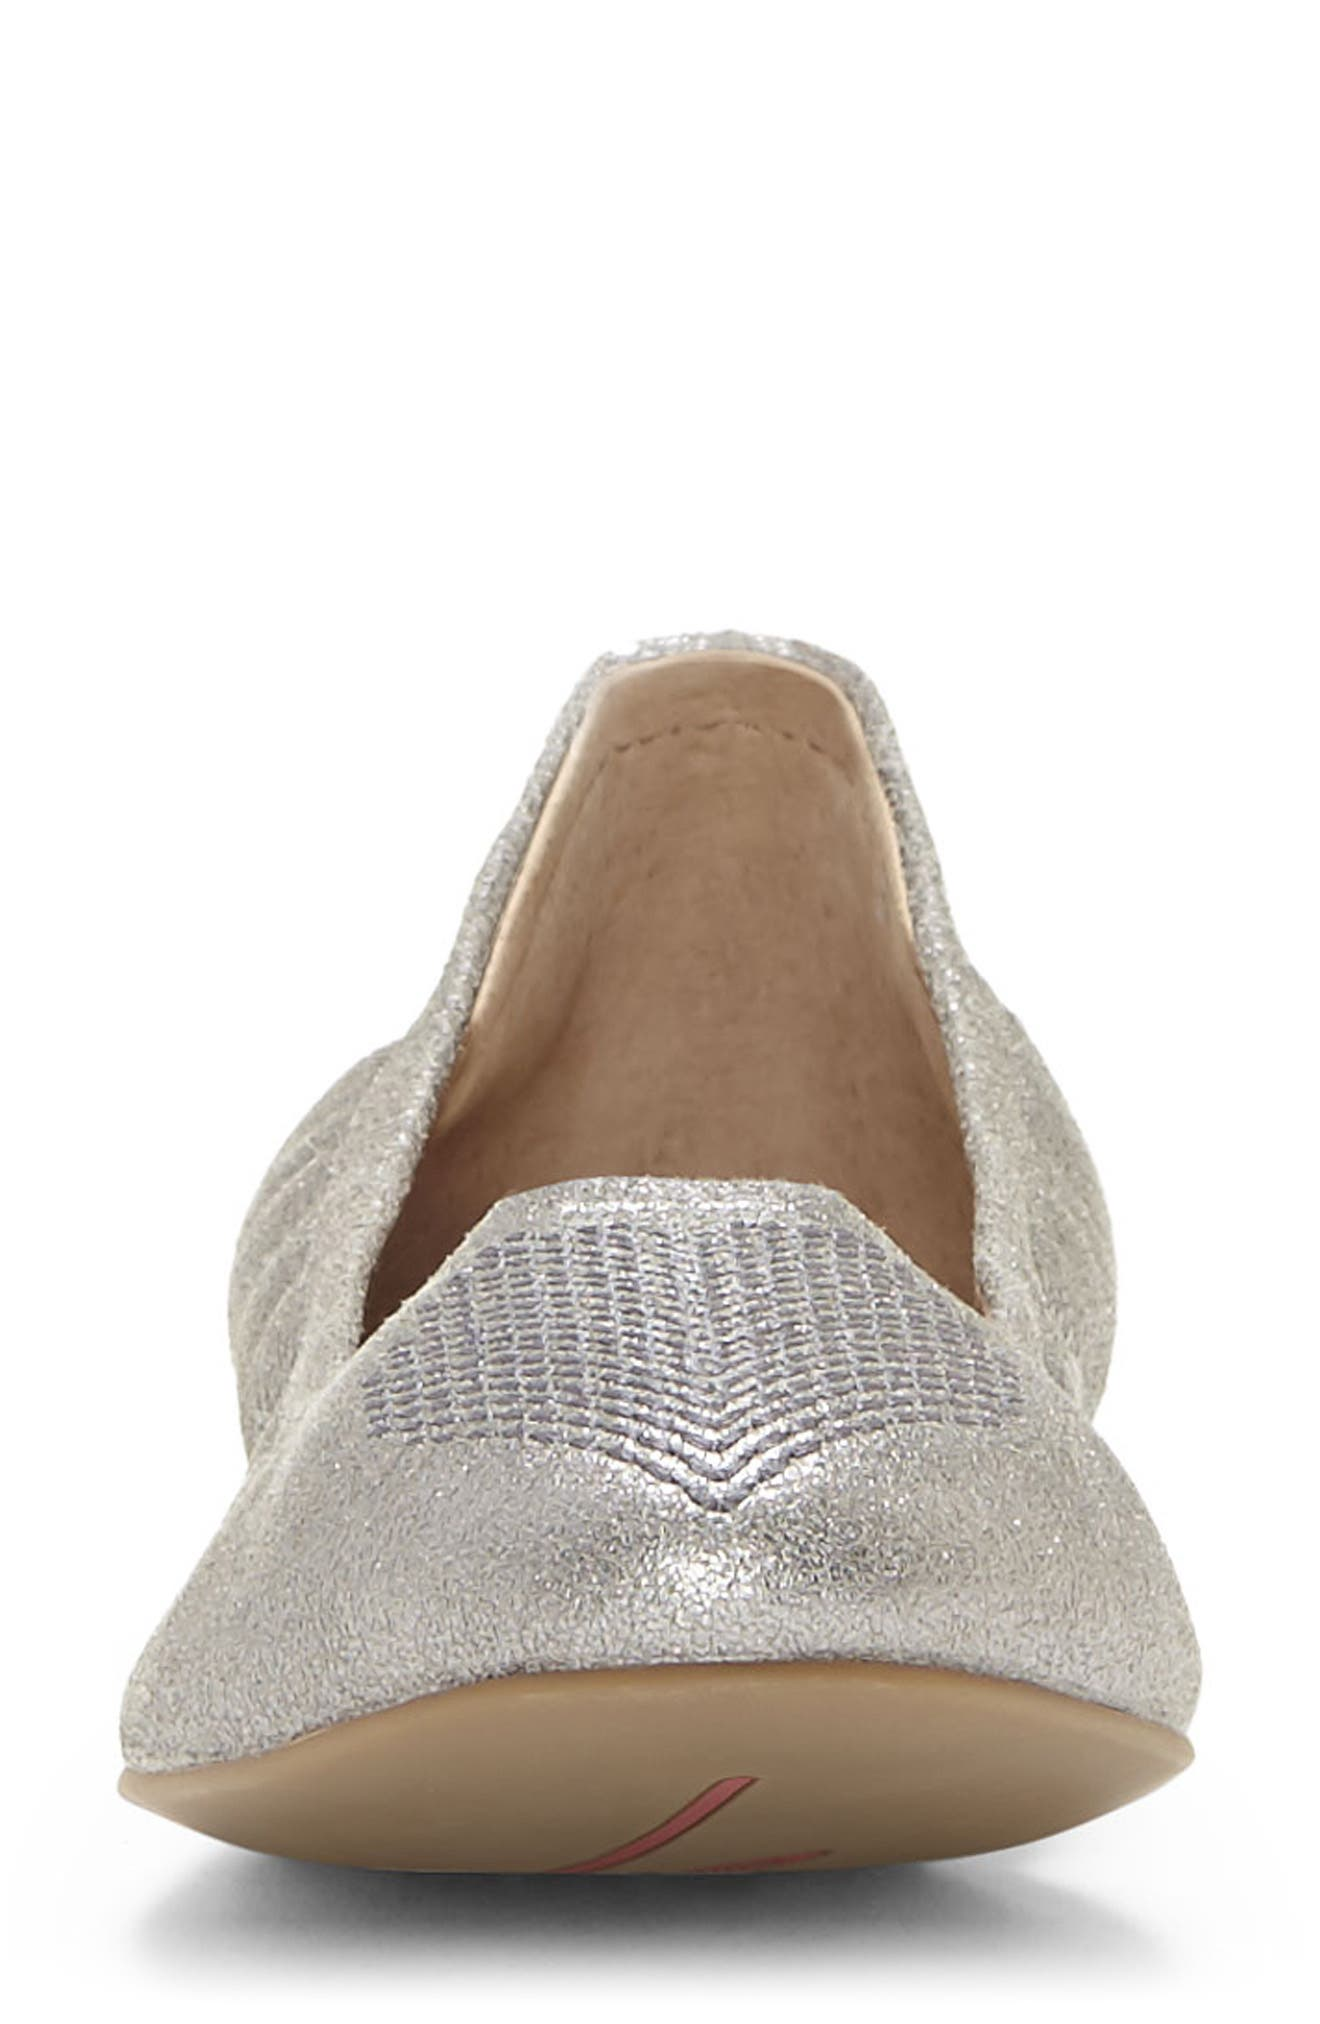 ED ELLEN DEGENERES,                             'Langston' Ballet Flat,                             Alternate thumbnail 4, color,                             SILVER FABRIC